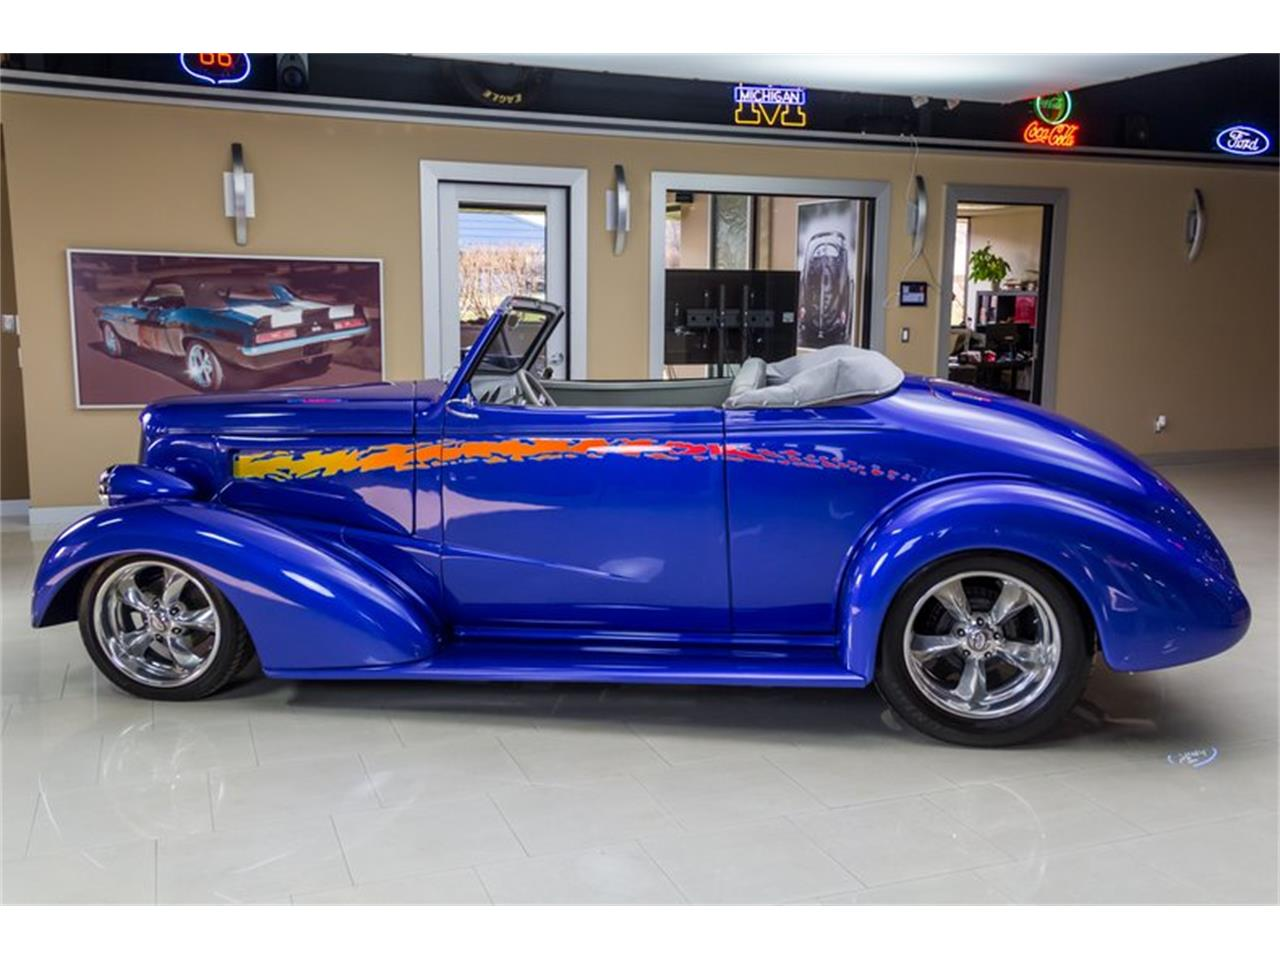 Large Picture of Classic '37 Chevrolet Antique - $49,900.00 - N75T